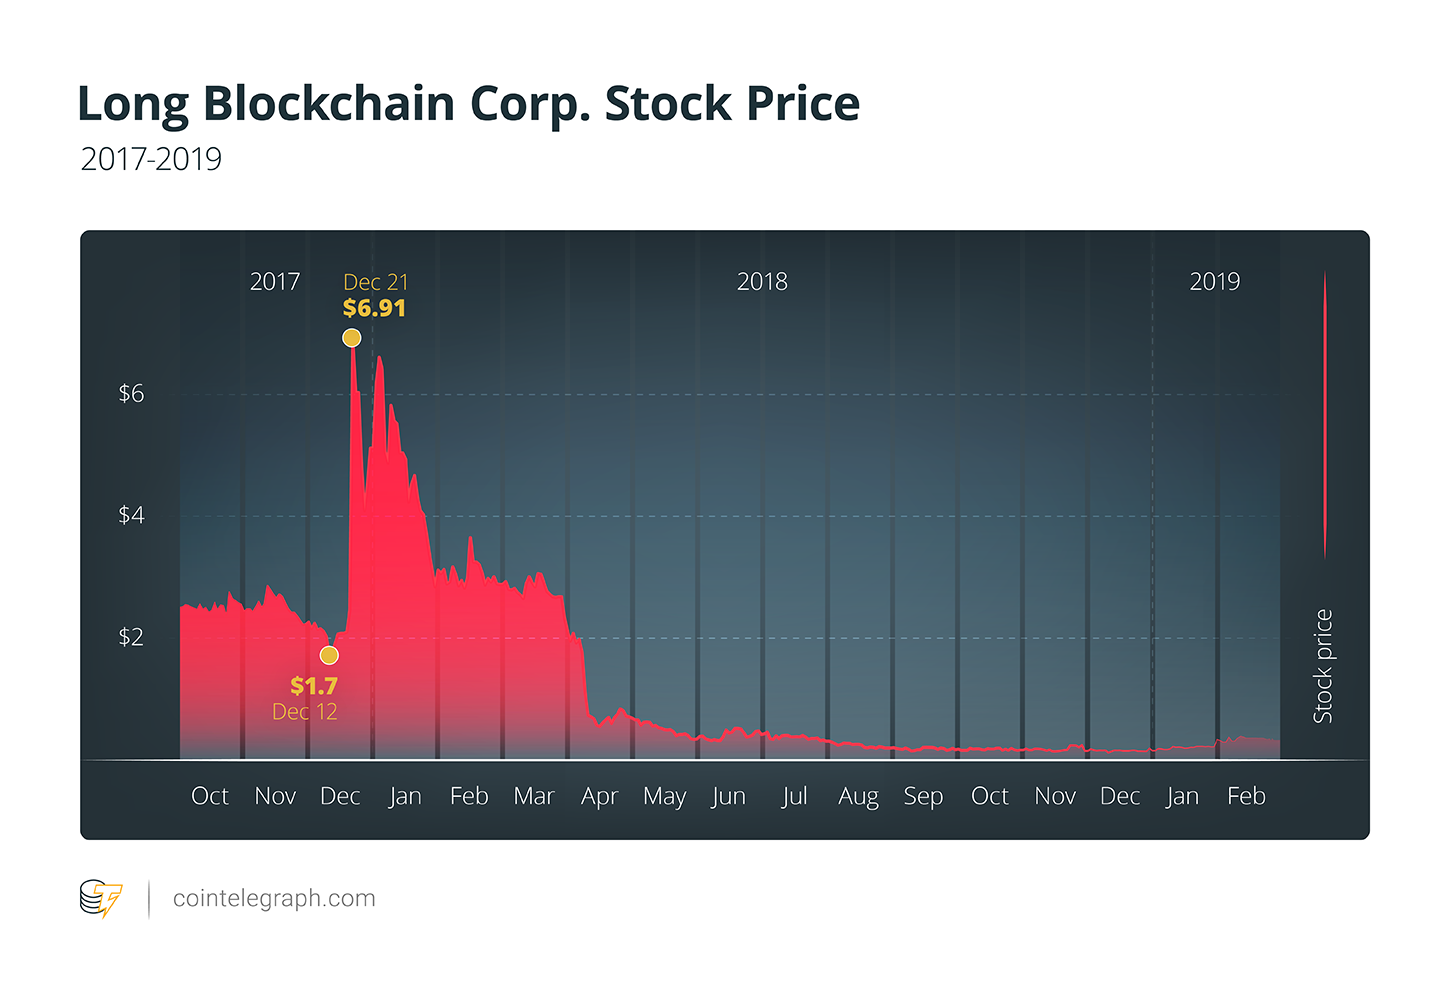 Long Blockchain Corp. Stock Price